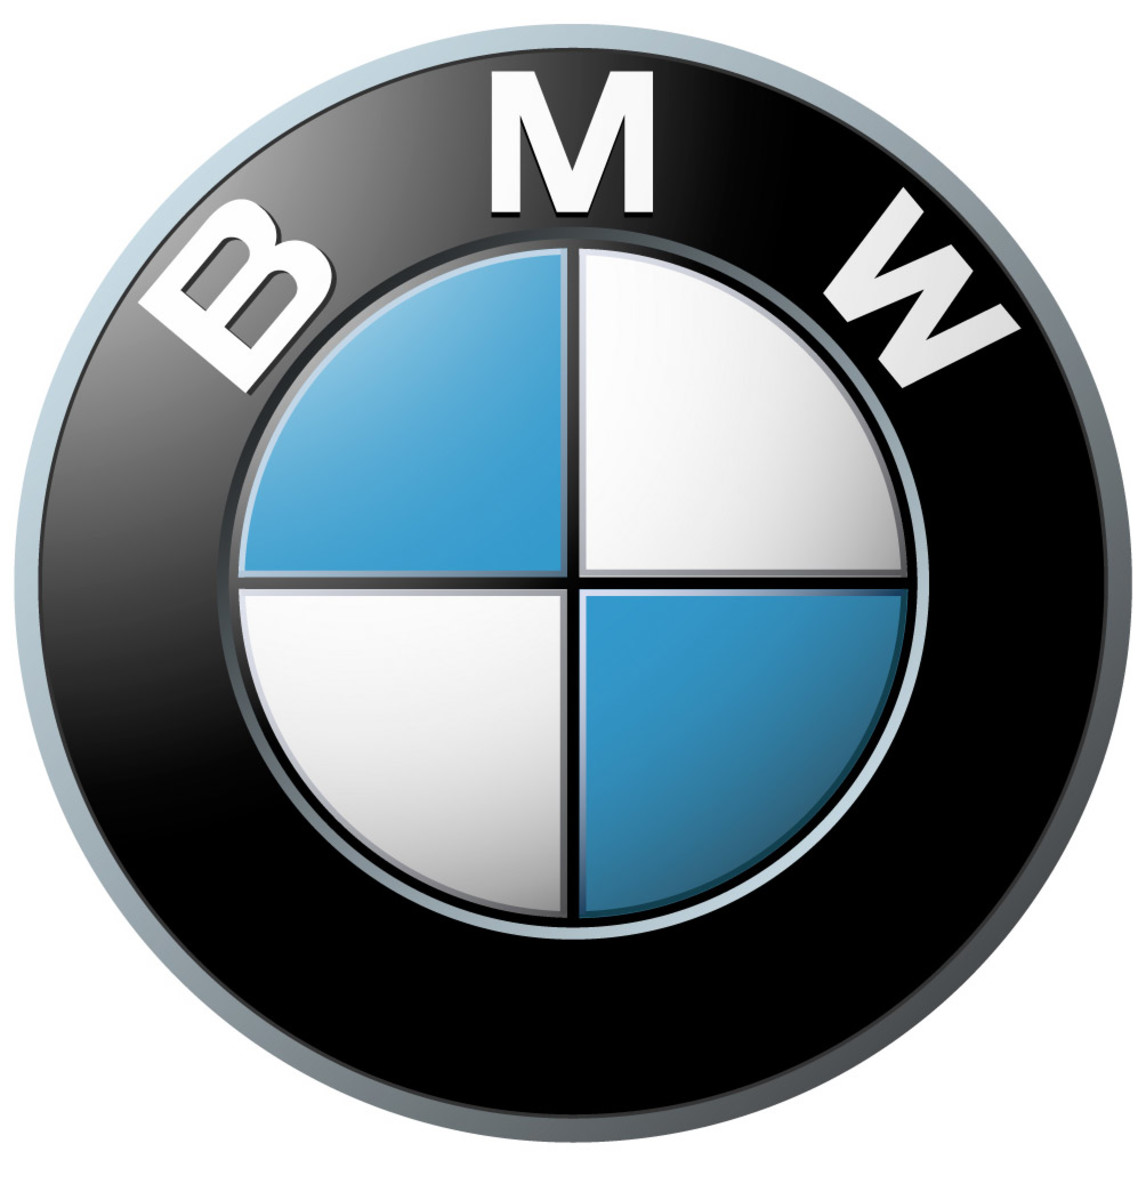 The BMW logo